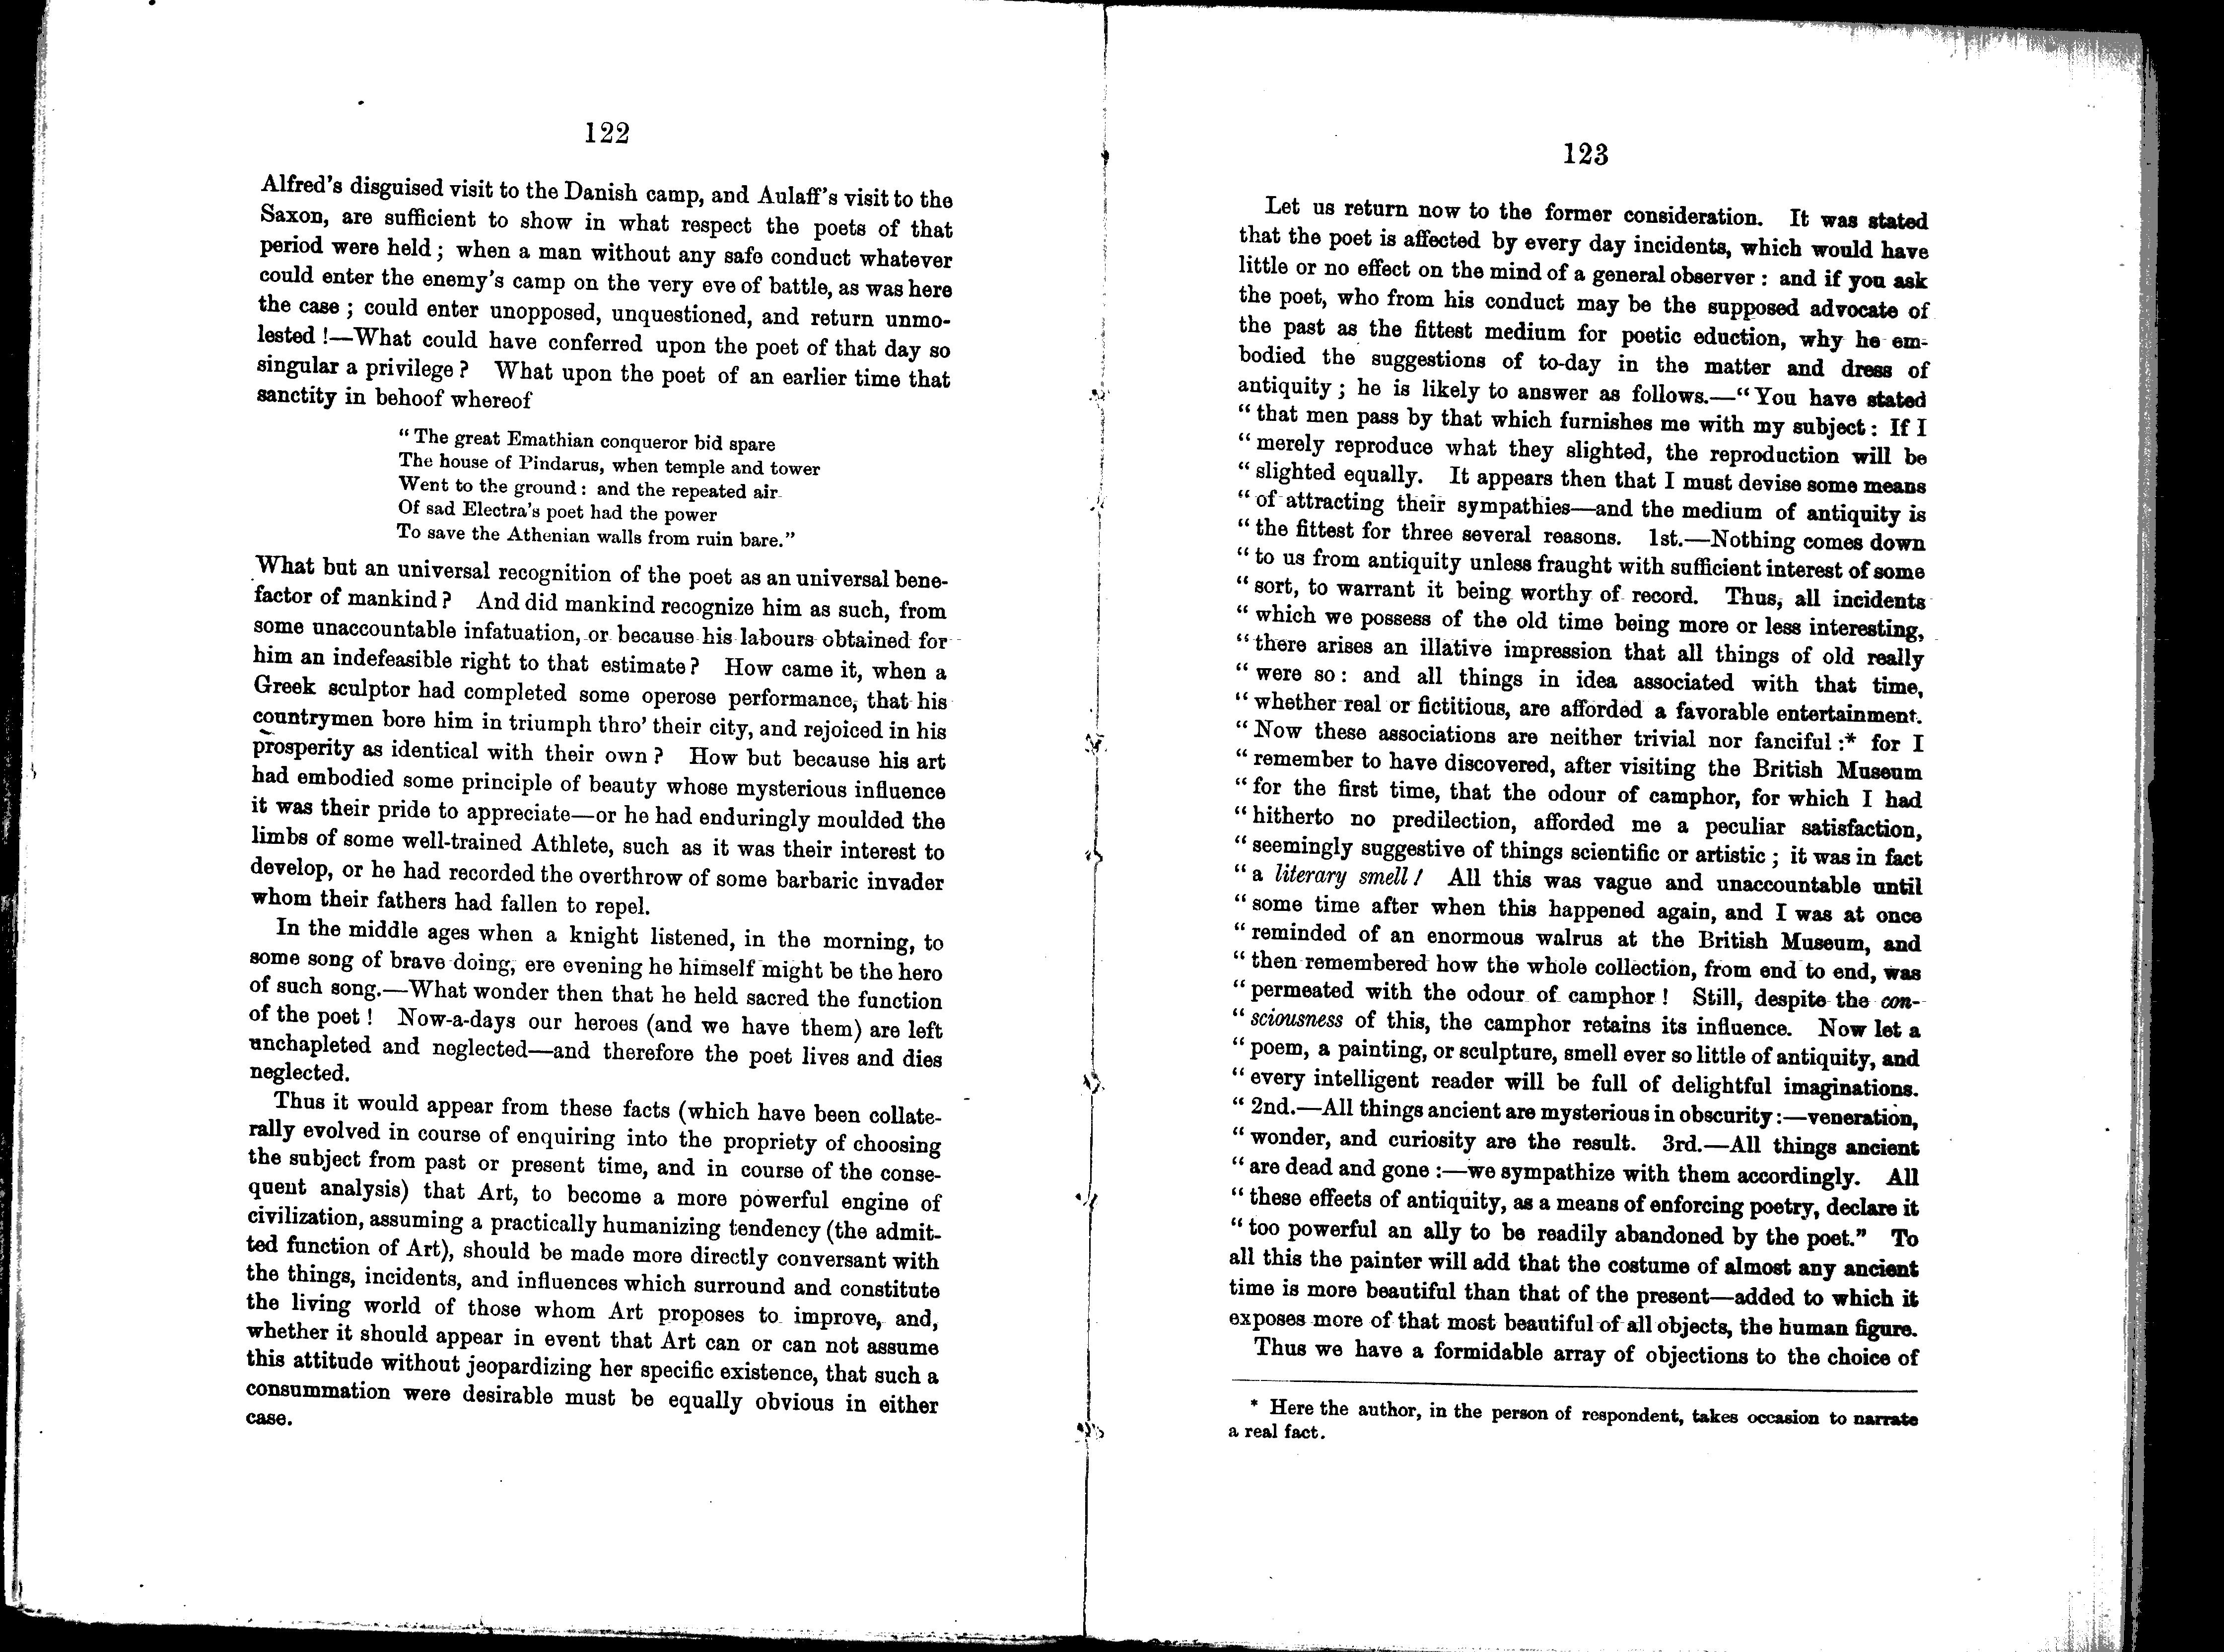 Rossetti Archive Doent: The Germ (1901 Facsimile Reprint, issue 3)